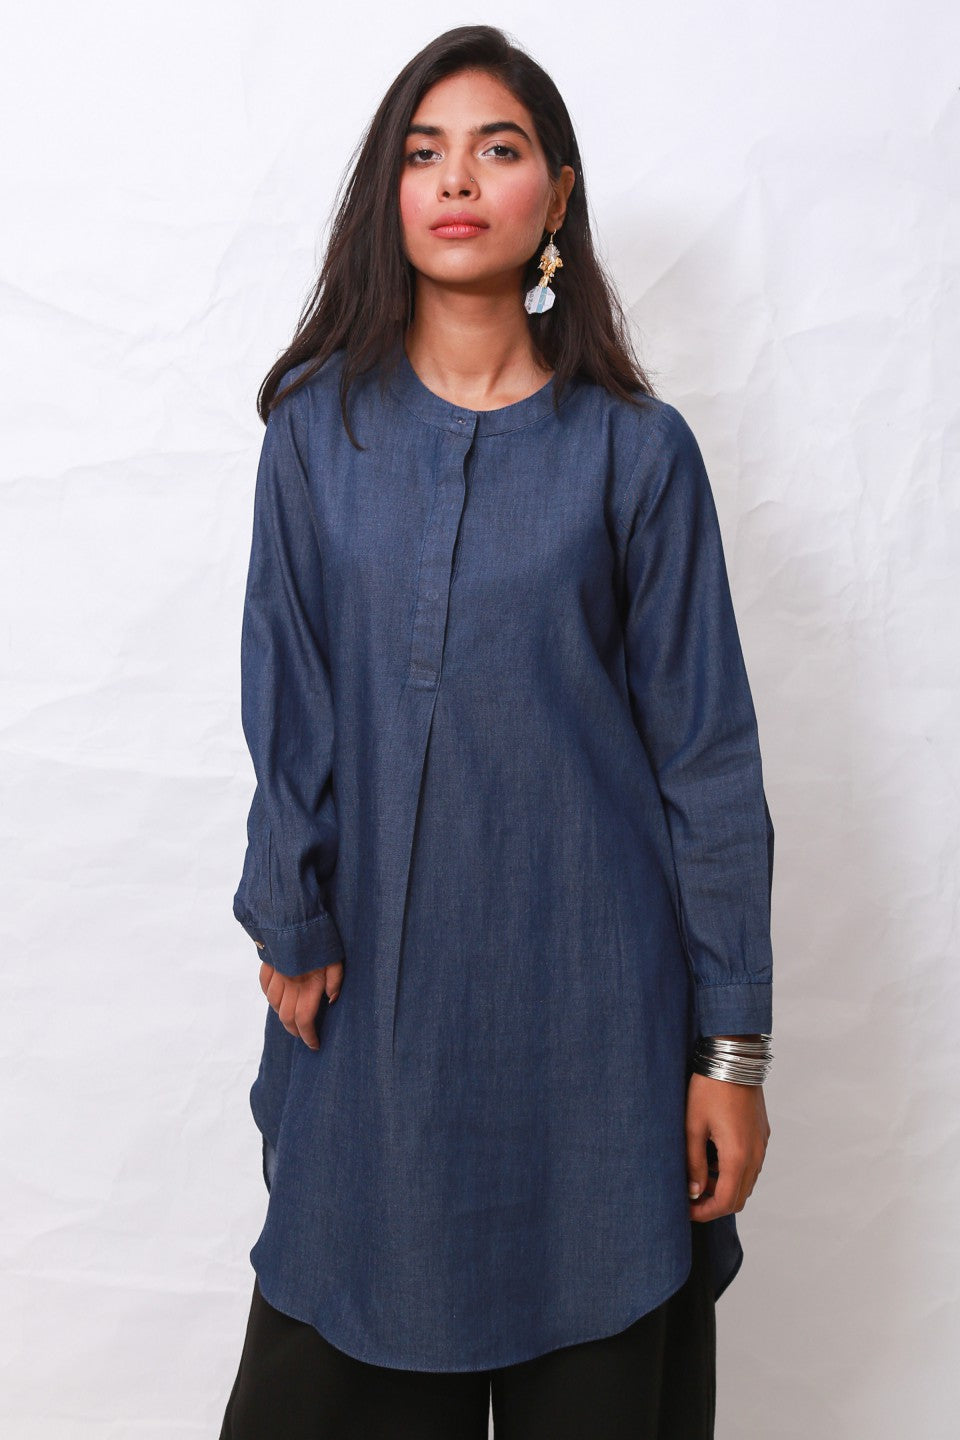 Generation - Blue Denim Tunic